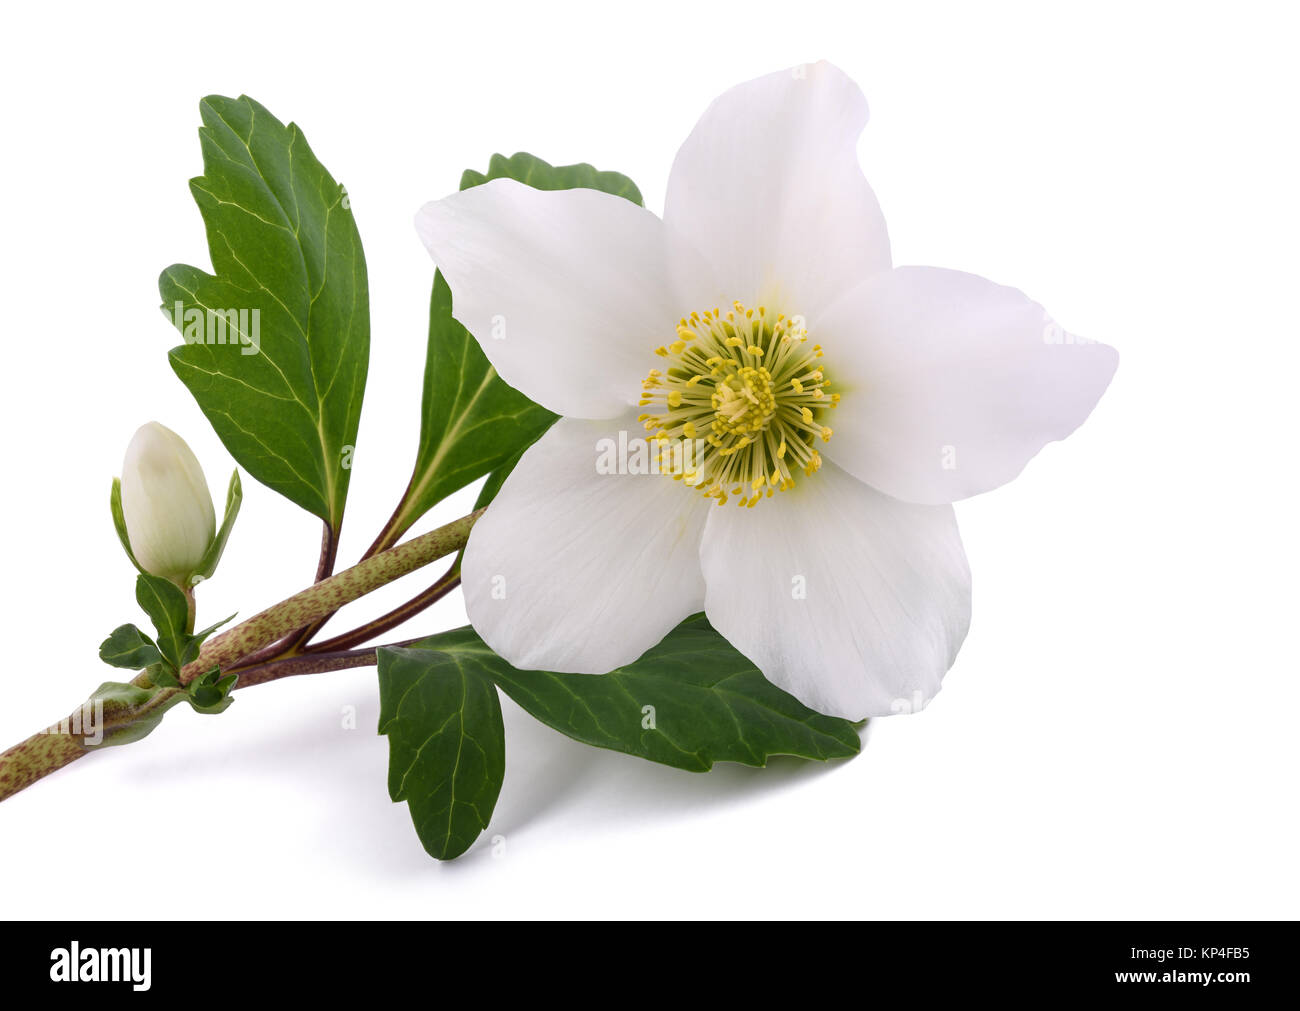 Hellebore flower (Christmas rose) isolated on white Stock Photo